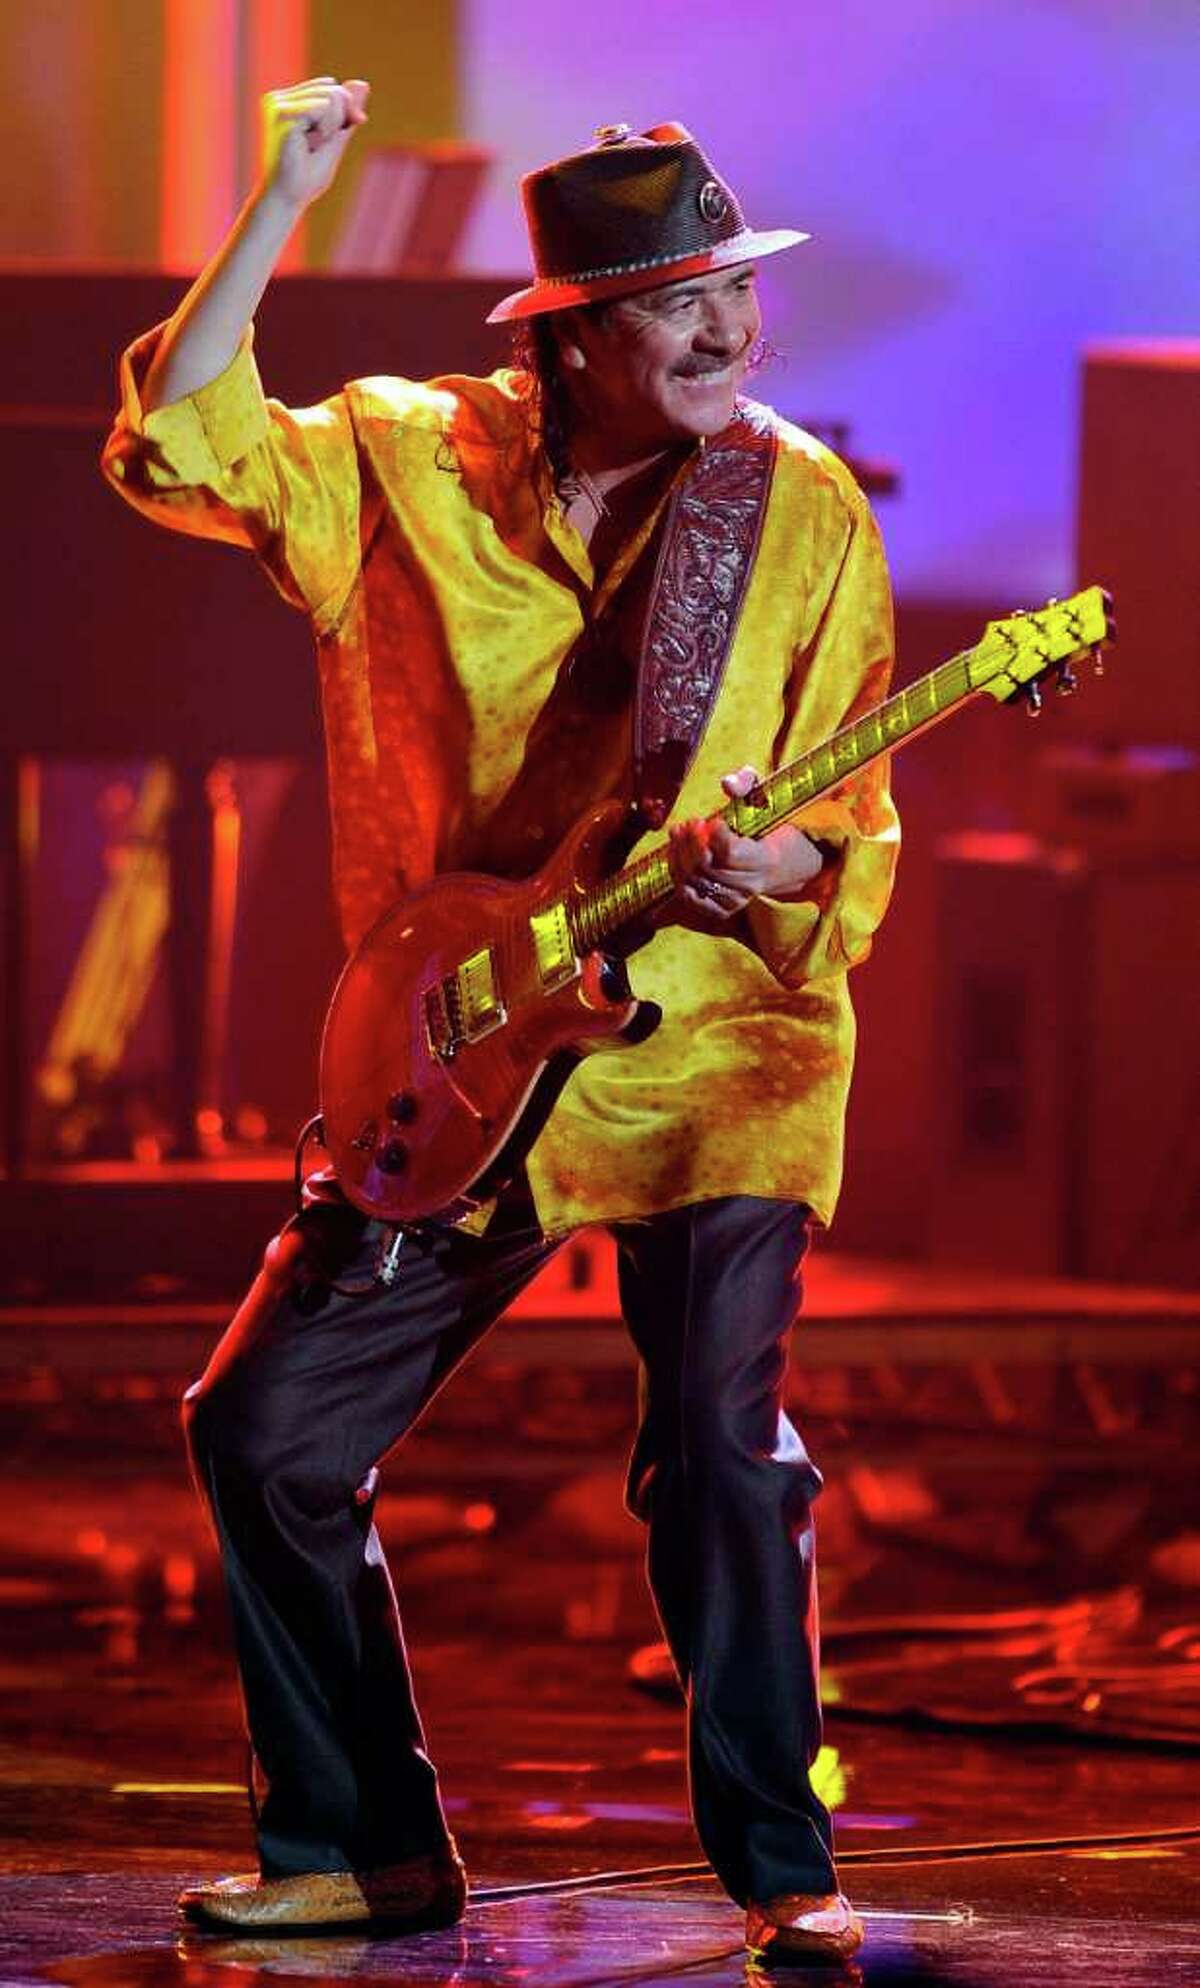 """Arts & Entertainment: 1. Carlos Santana was inducted into the Rock and Roll Hall of Fame in 1998. In 1999, he released """"Supernatural,"""" his greatest commercial success to date. The multi-platinum album won nine Grammy awards."""